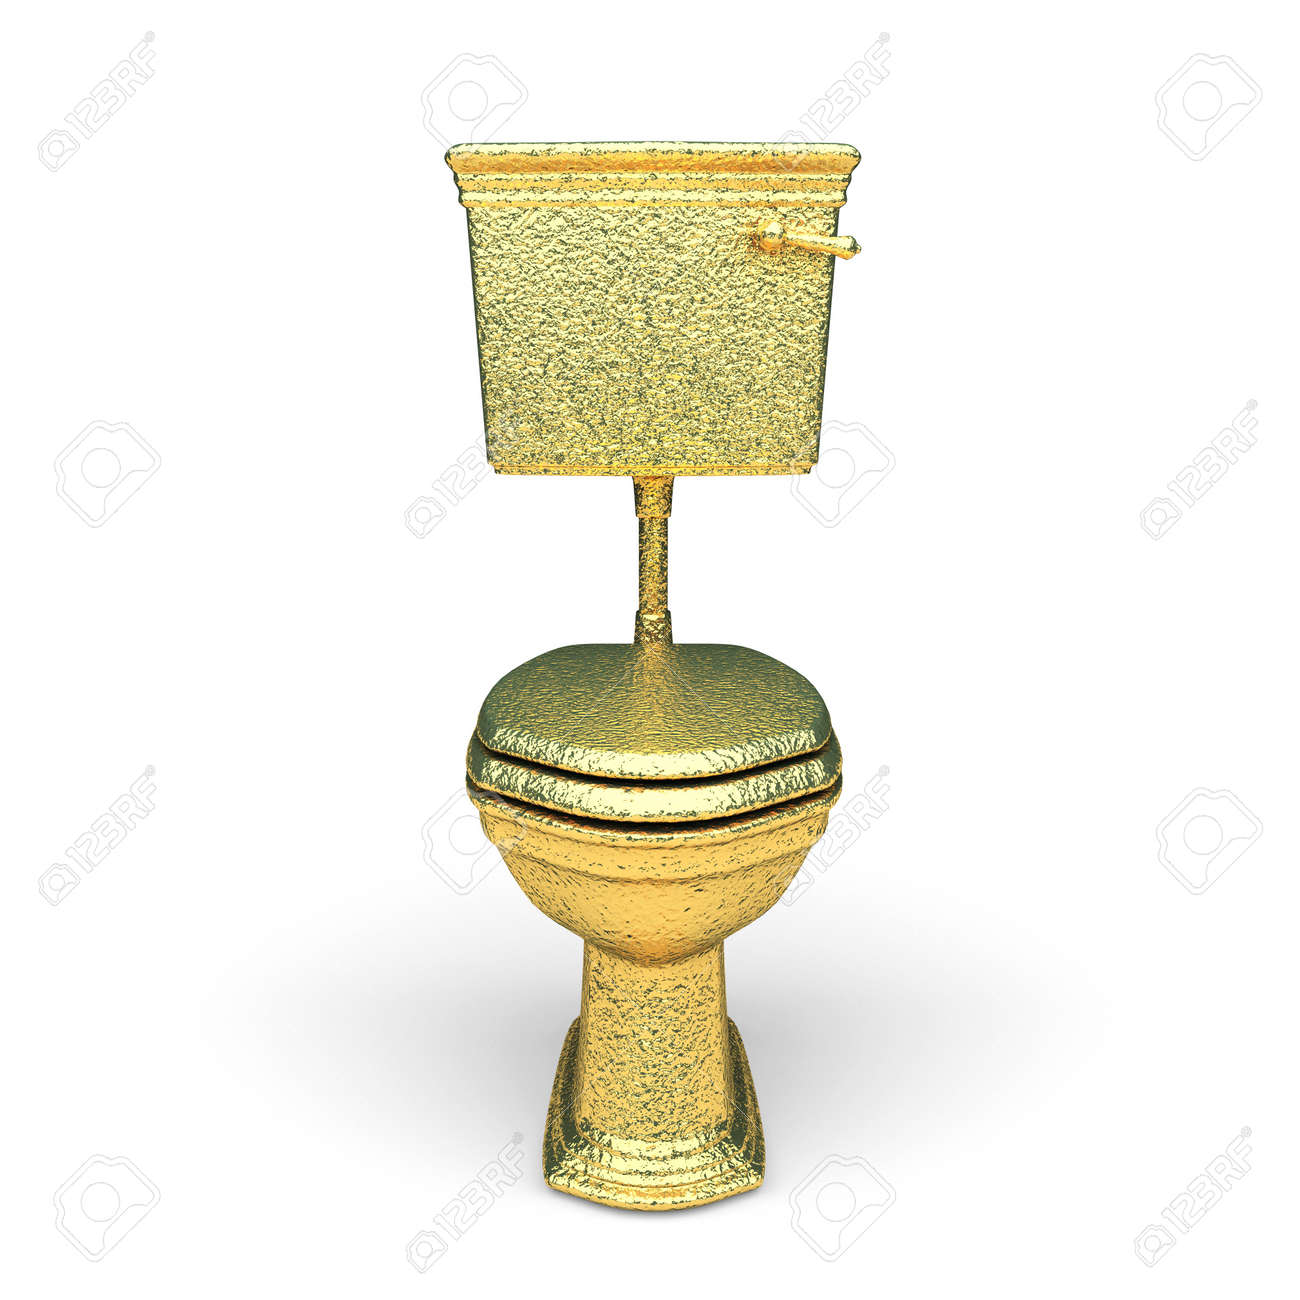 isolated golden toilet bowl made in 3d graphics Stock Photo - 8159455